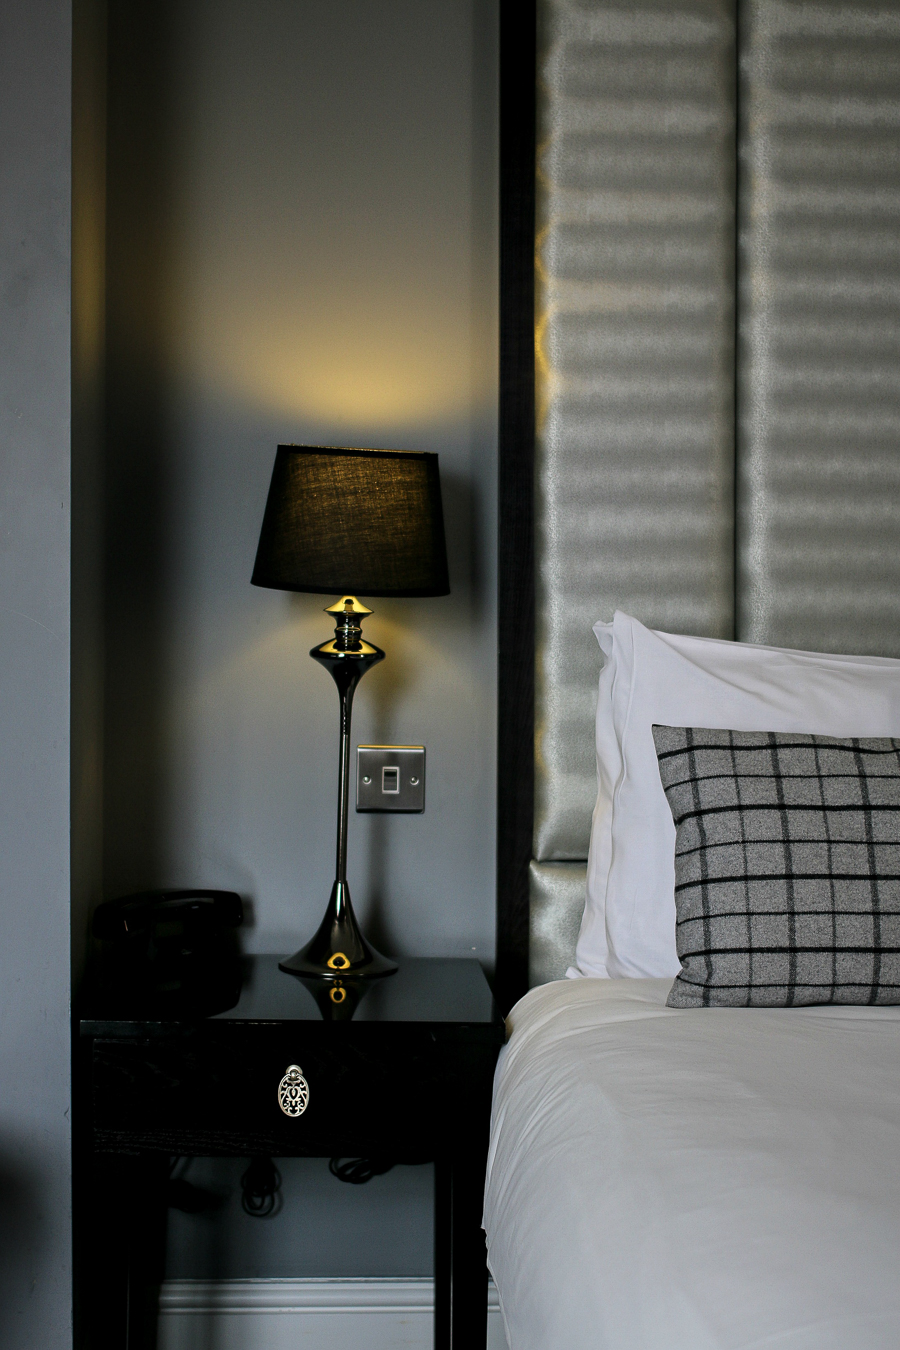 How to Create That Hotel Chic Experience in Your Own Bedroom